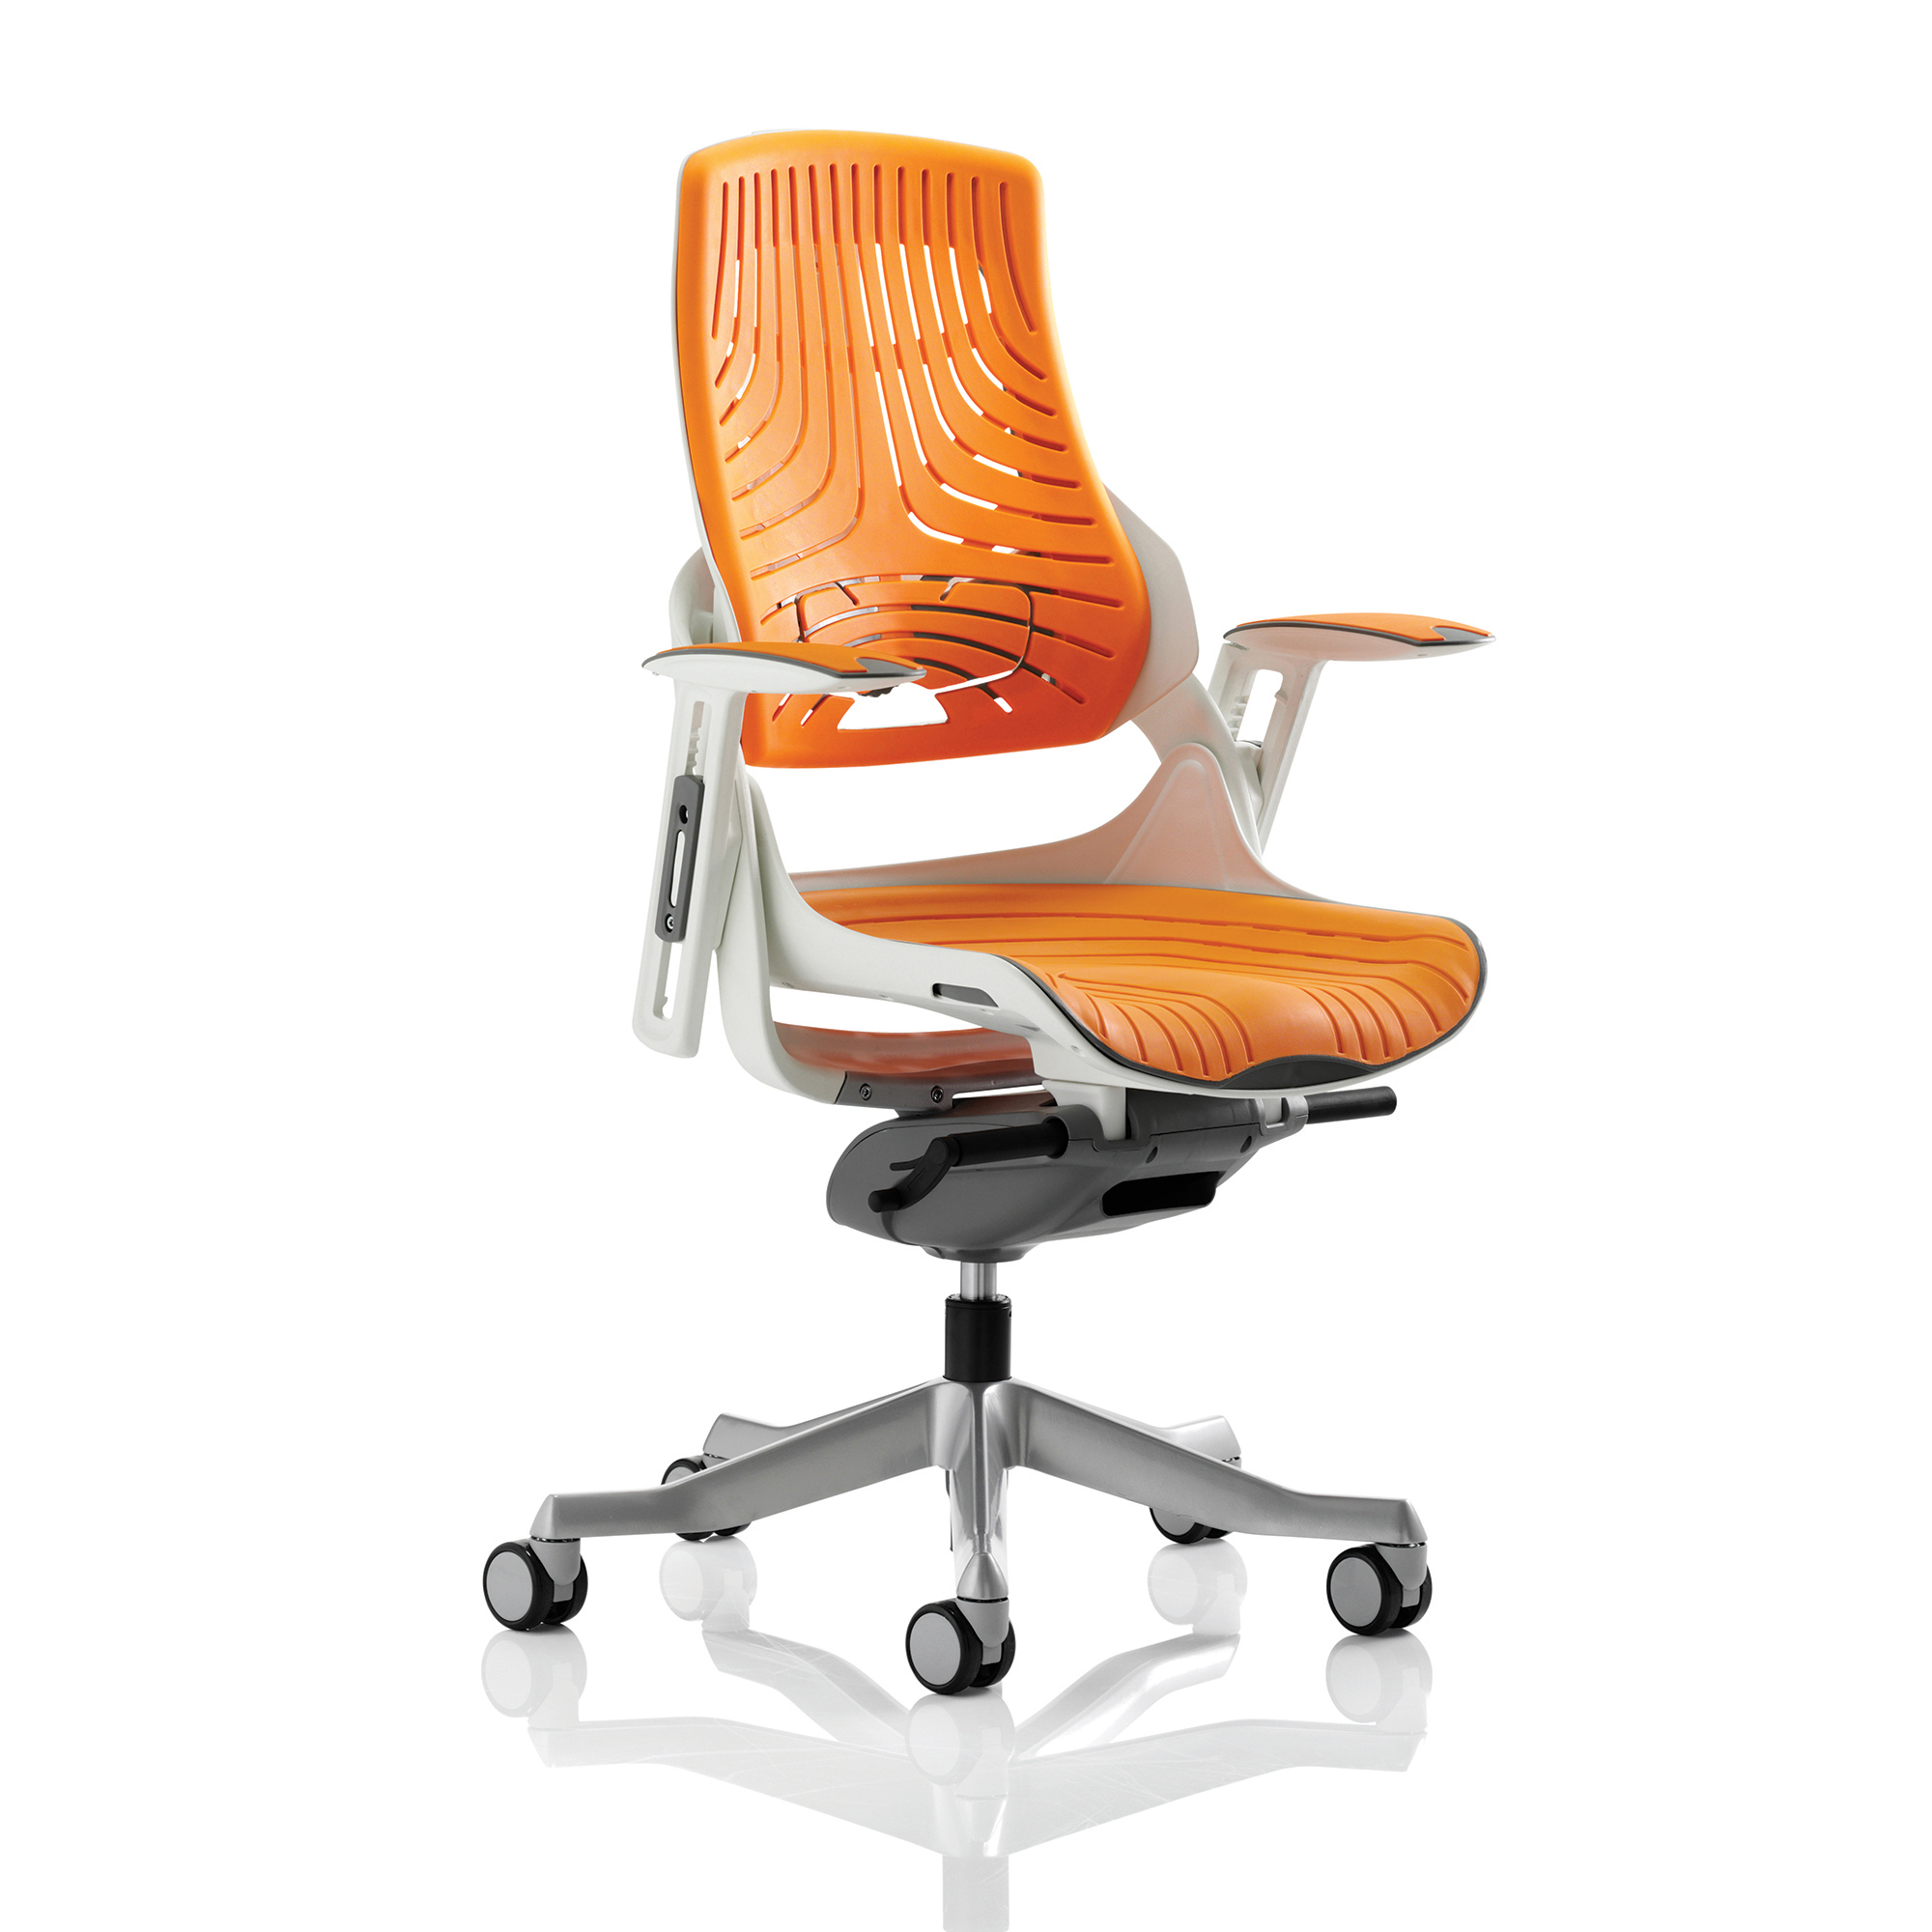 Executive seating Adroit Zure Executive Chair With Arms Elastomer Gel Orange Ref EX000133